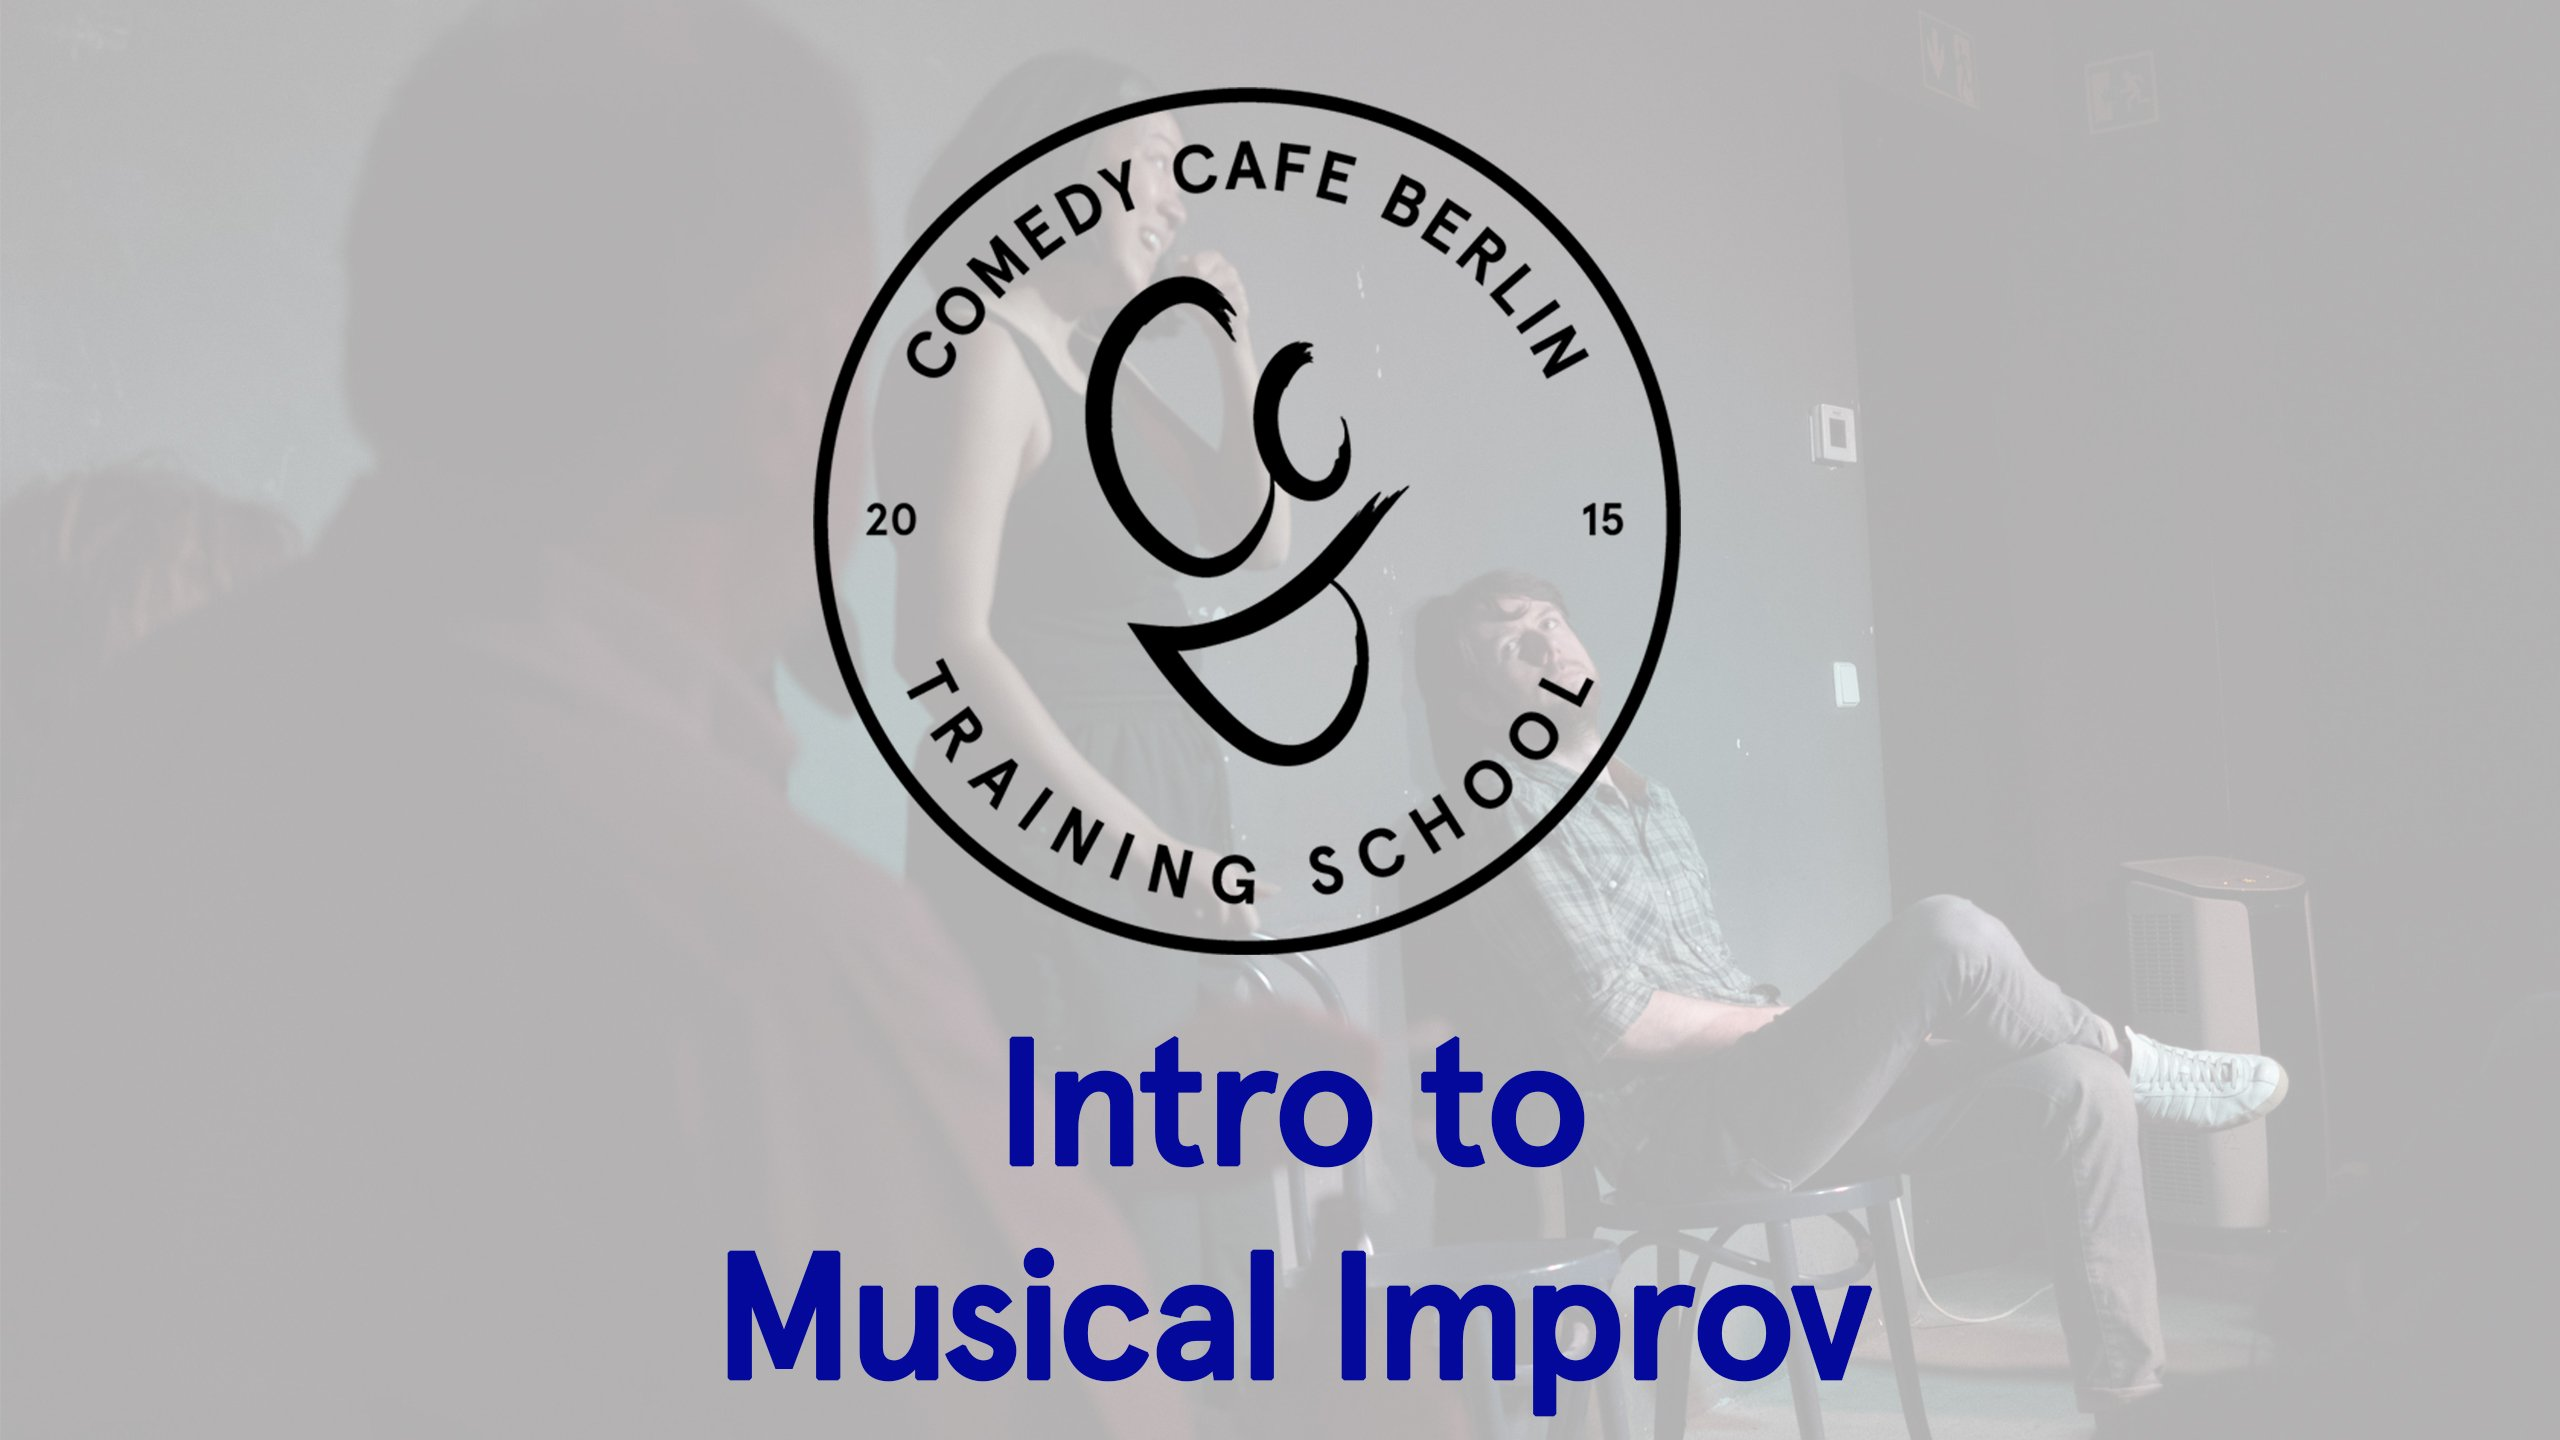 Intro to Musical Improv